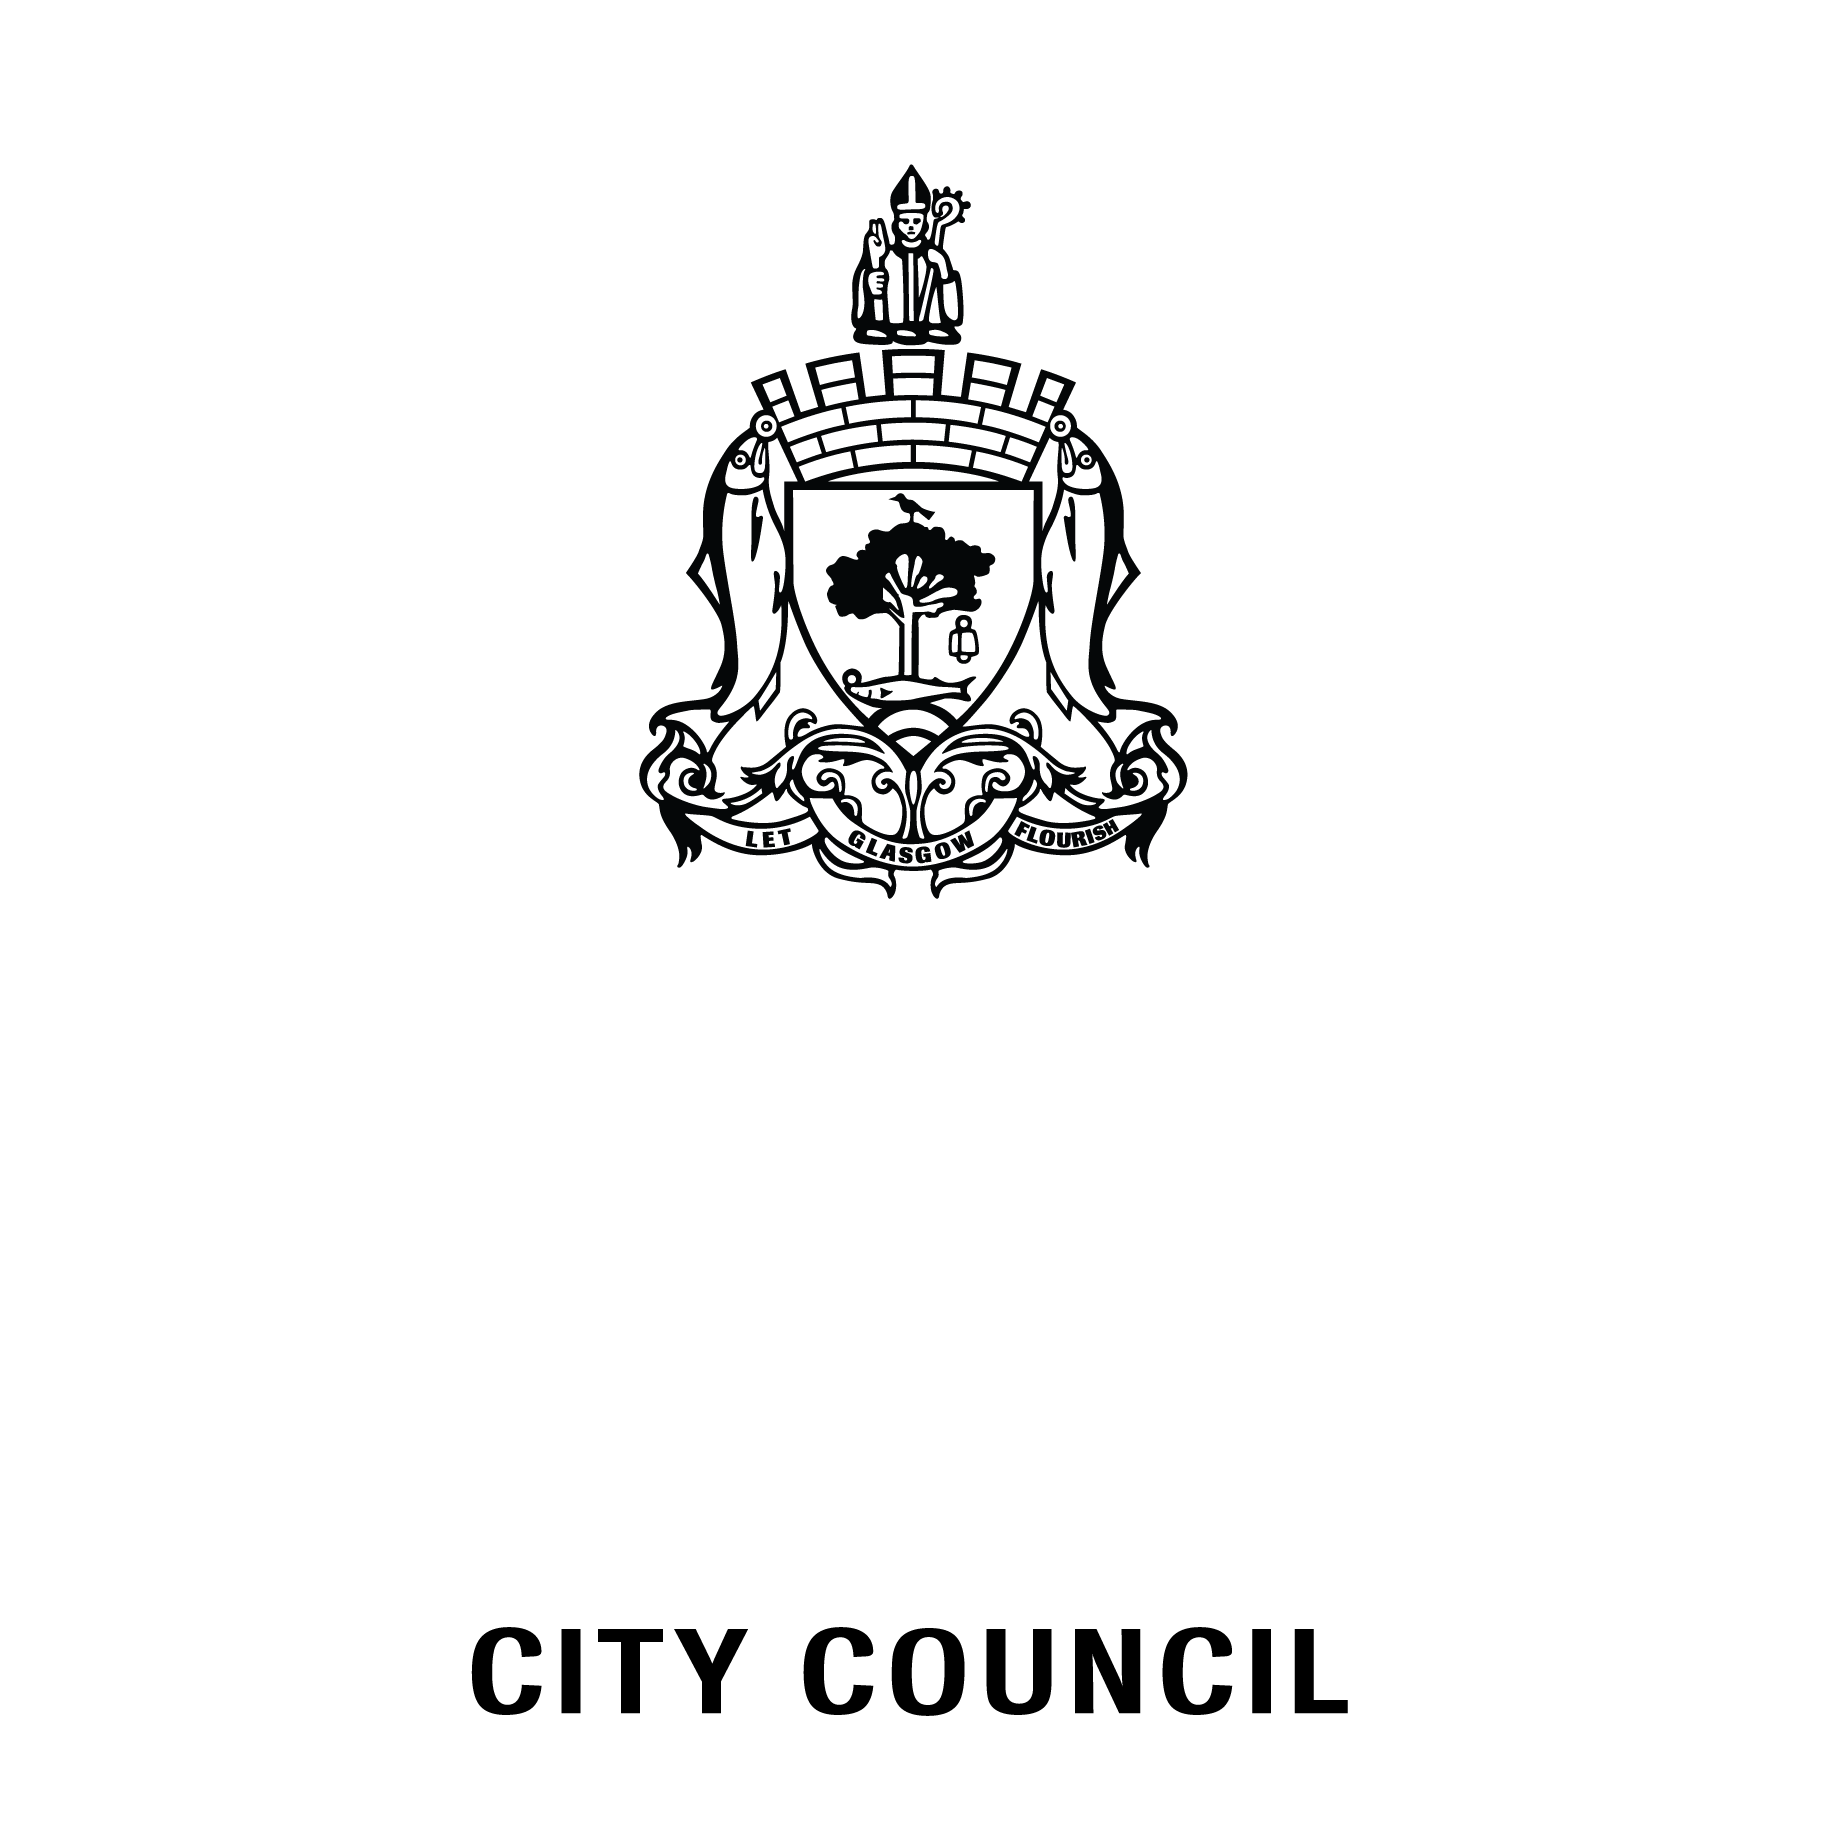 glasgow-city-council-logo